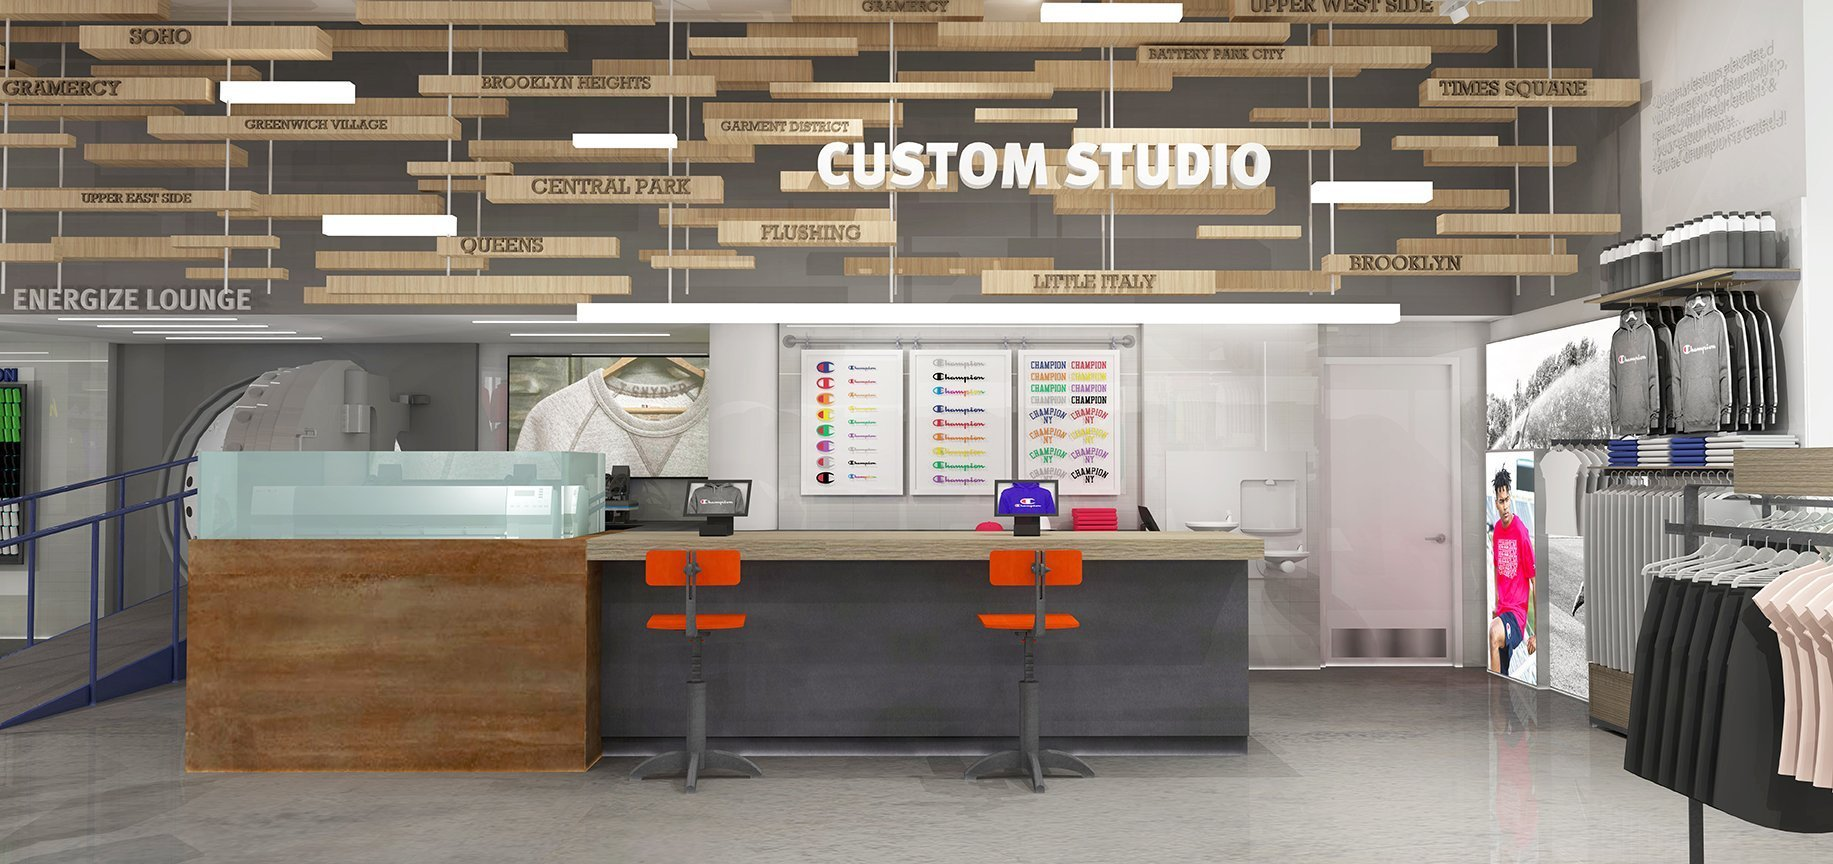 The Customization Studio at the back of the store allows customers to add patches to their merchandise. The multi-layered wood feature overhead features the names of NY boroughs. There is seating in front of the bar with digital displays for customers to choose their designs.